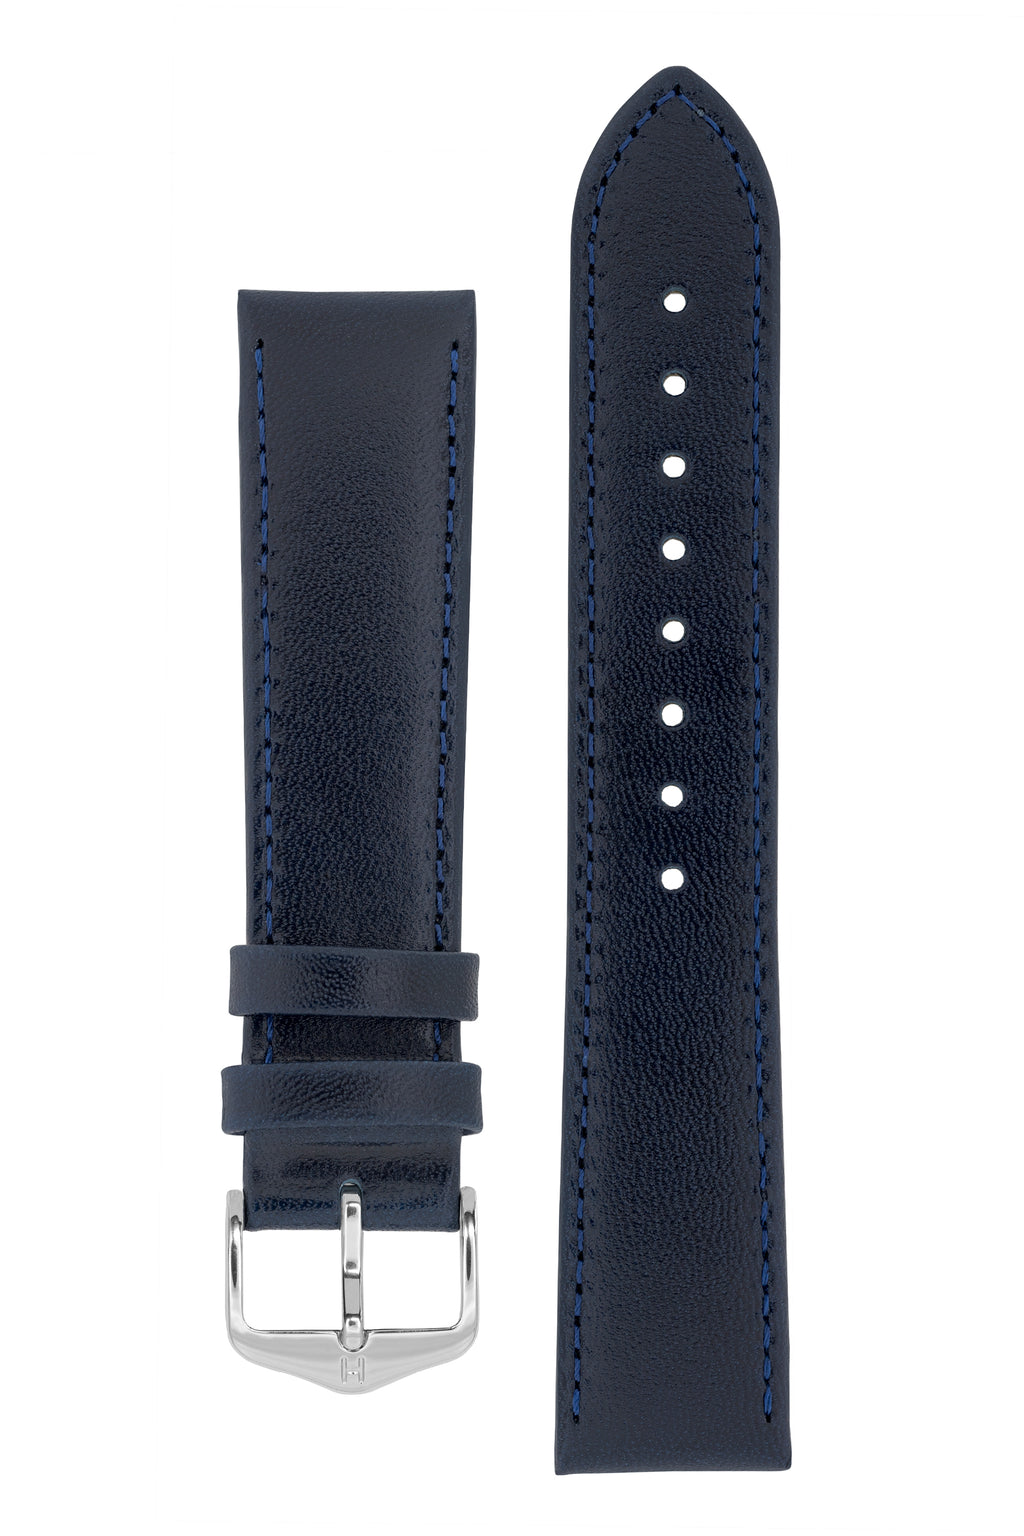 b10704eb75b Blue Watch Straps - Replacement Bracelets to suit most Watches ...